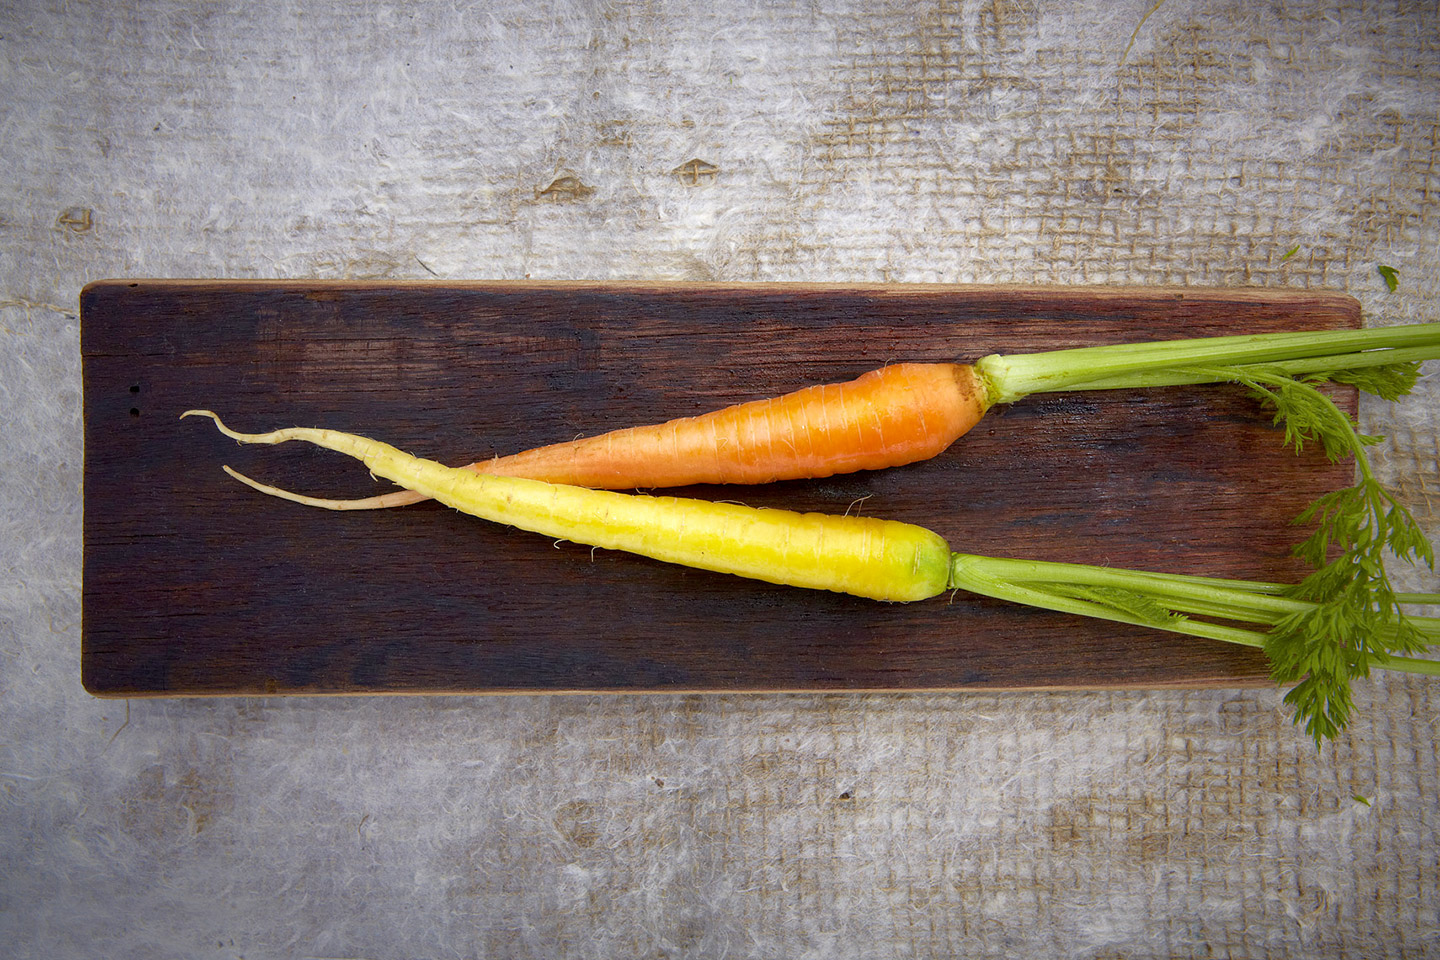 AlanCampbellPhotography, young carrots garden life ingredients